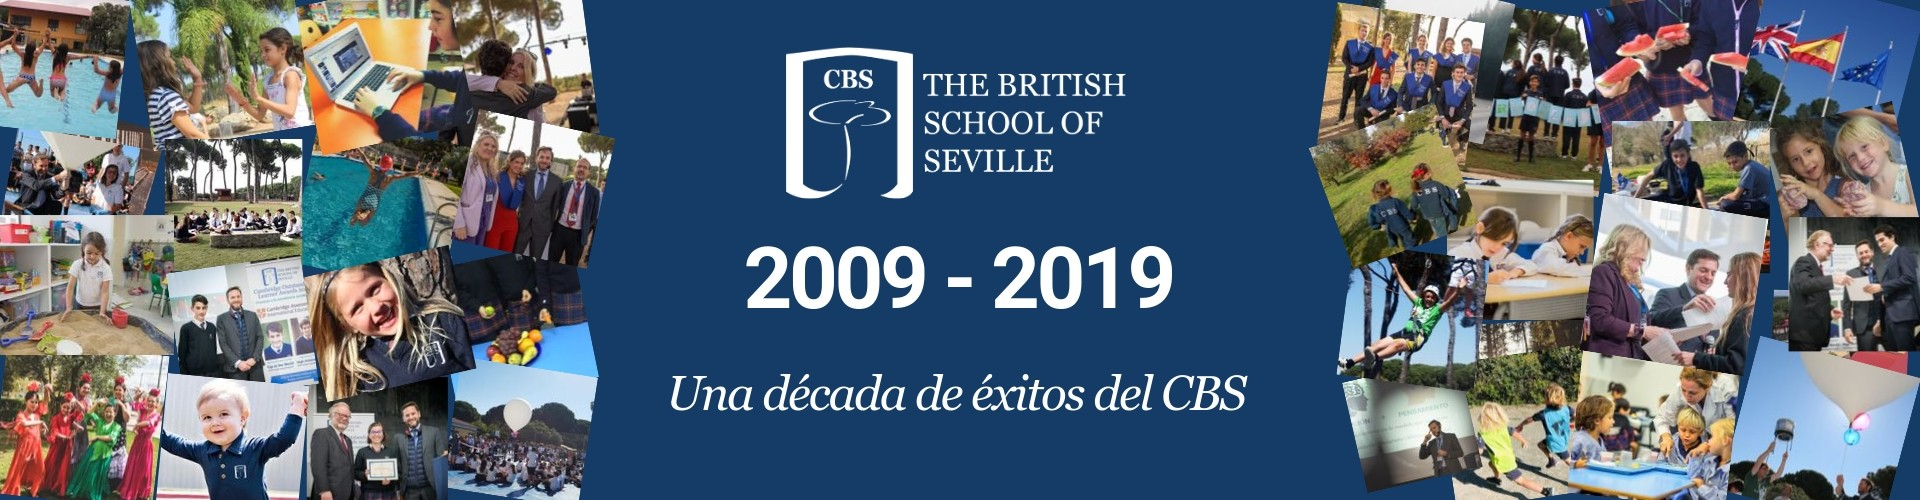 Slider-10th-Anniversary-CBS-The-British-School-of-Seville